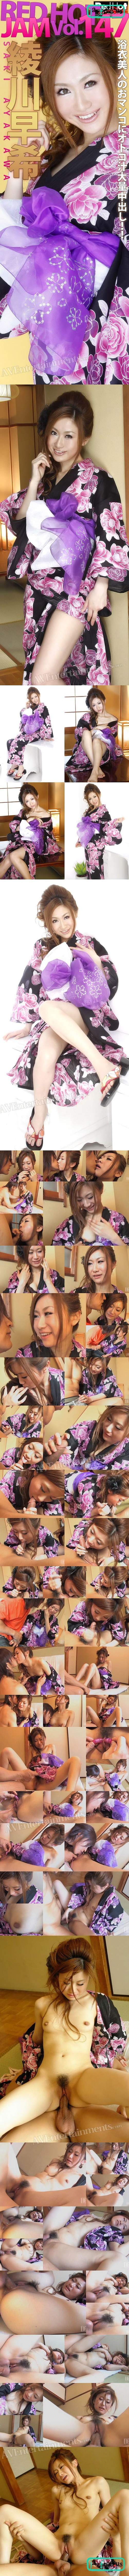 [RHJ 147] Red Hot Jam Vol. 147 : Saki Ayakawa 綾川早希 Saki Ayakawa RHJ Red Hot Jam